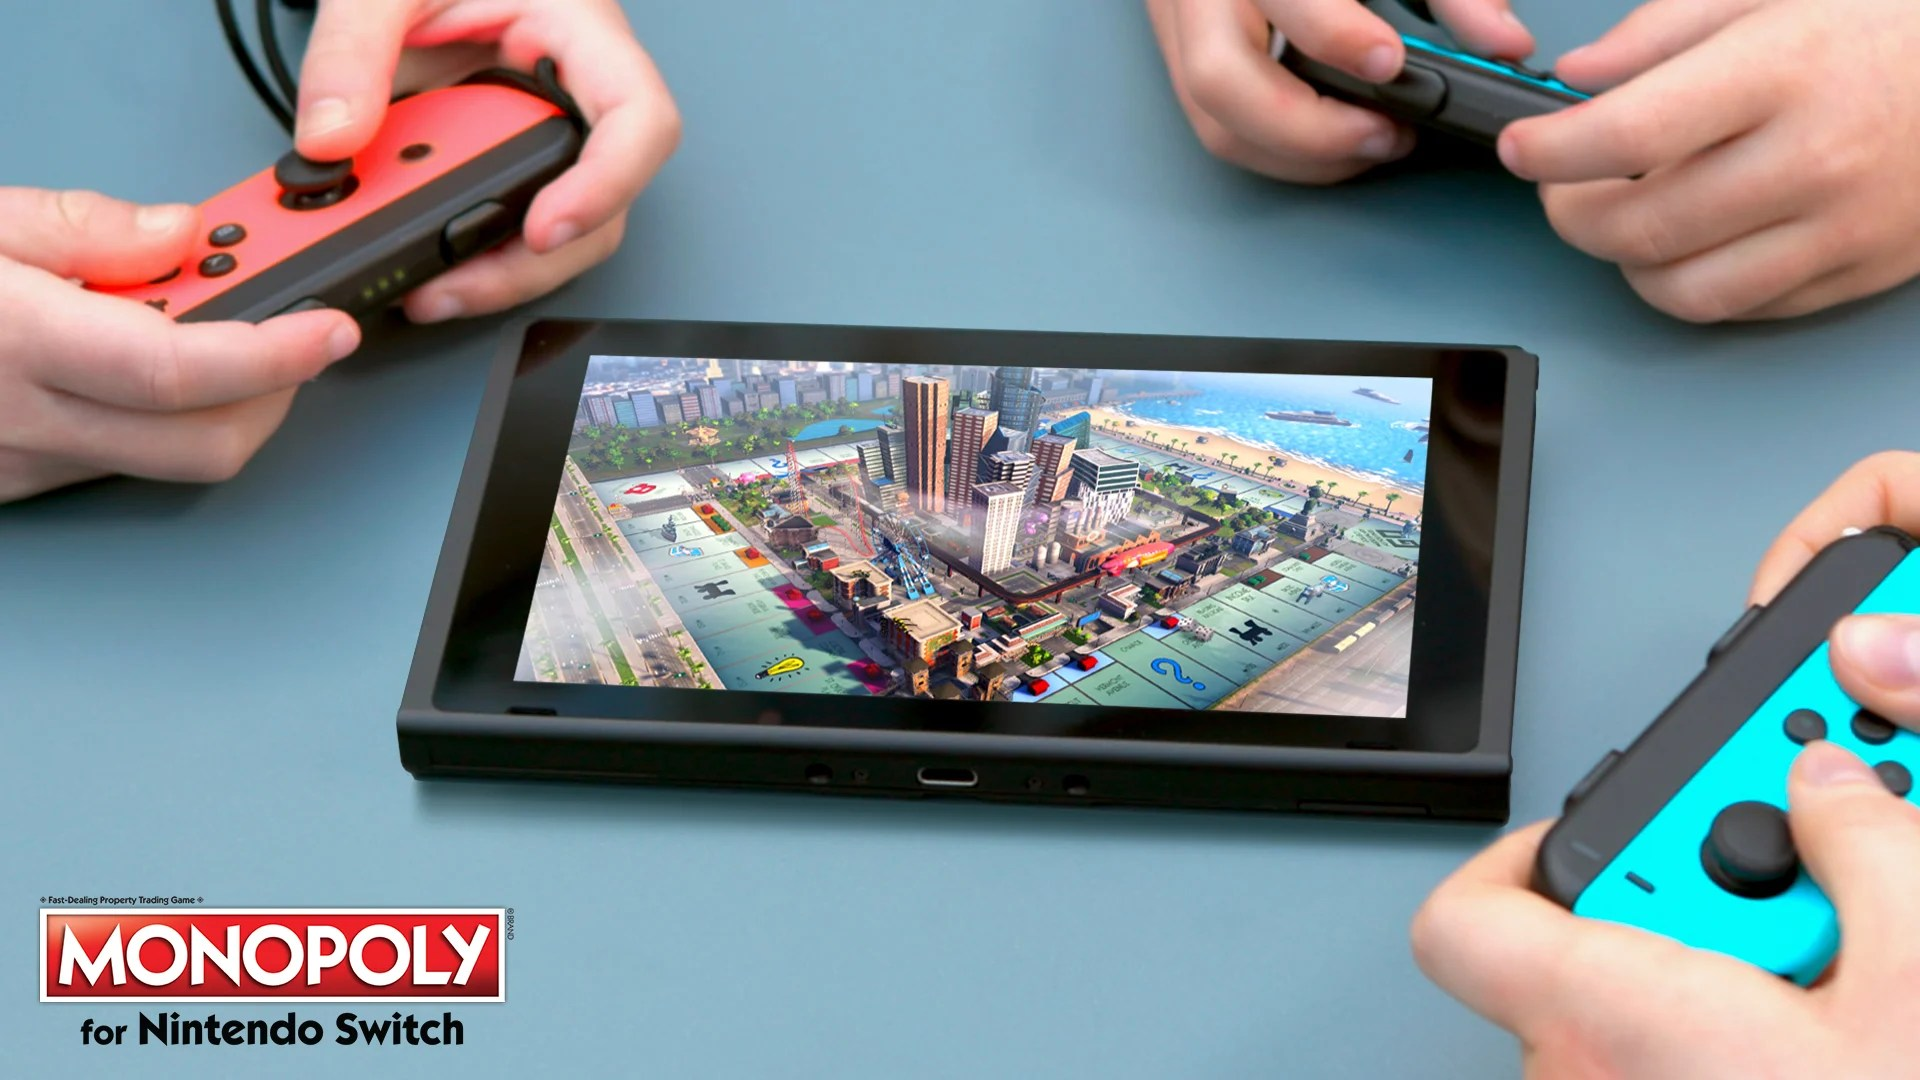 Monopoly For Nintendo Switch Released Today By Ubisoft And